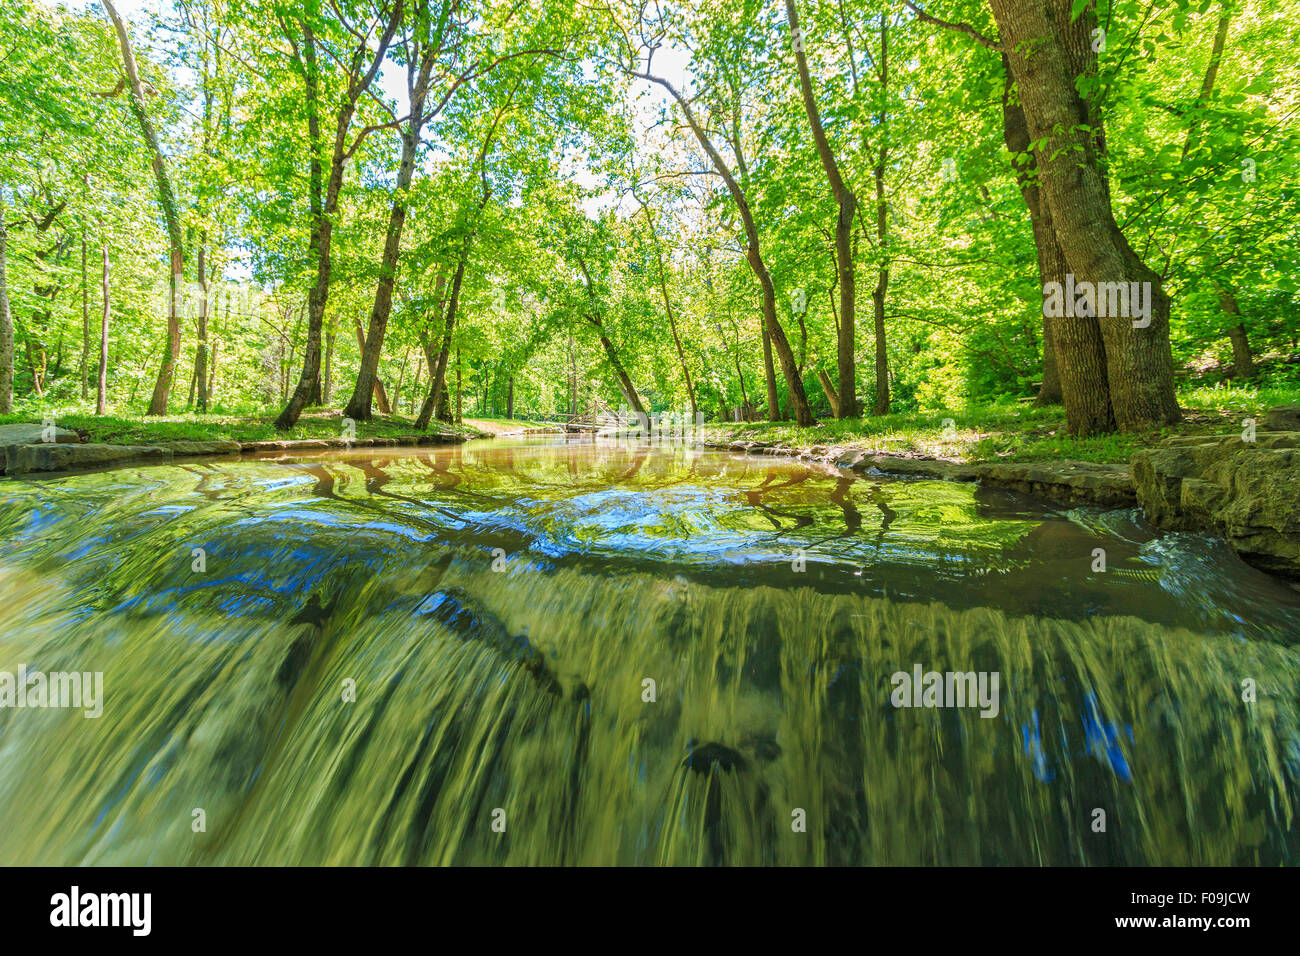 One of the many waterfalls at Dogwood Canyon Nature Park near Branson, MO., seen from an unusual angle - Stock Image